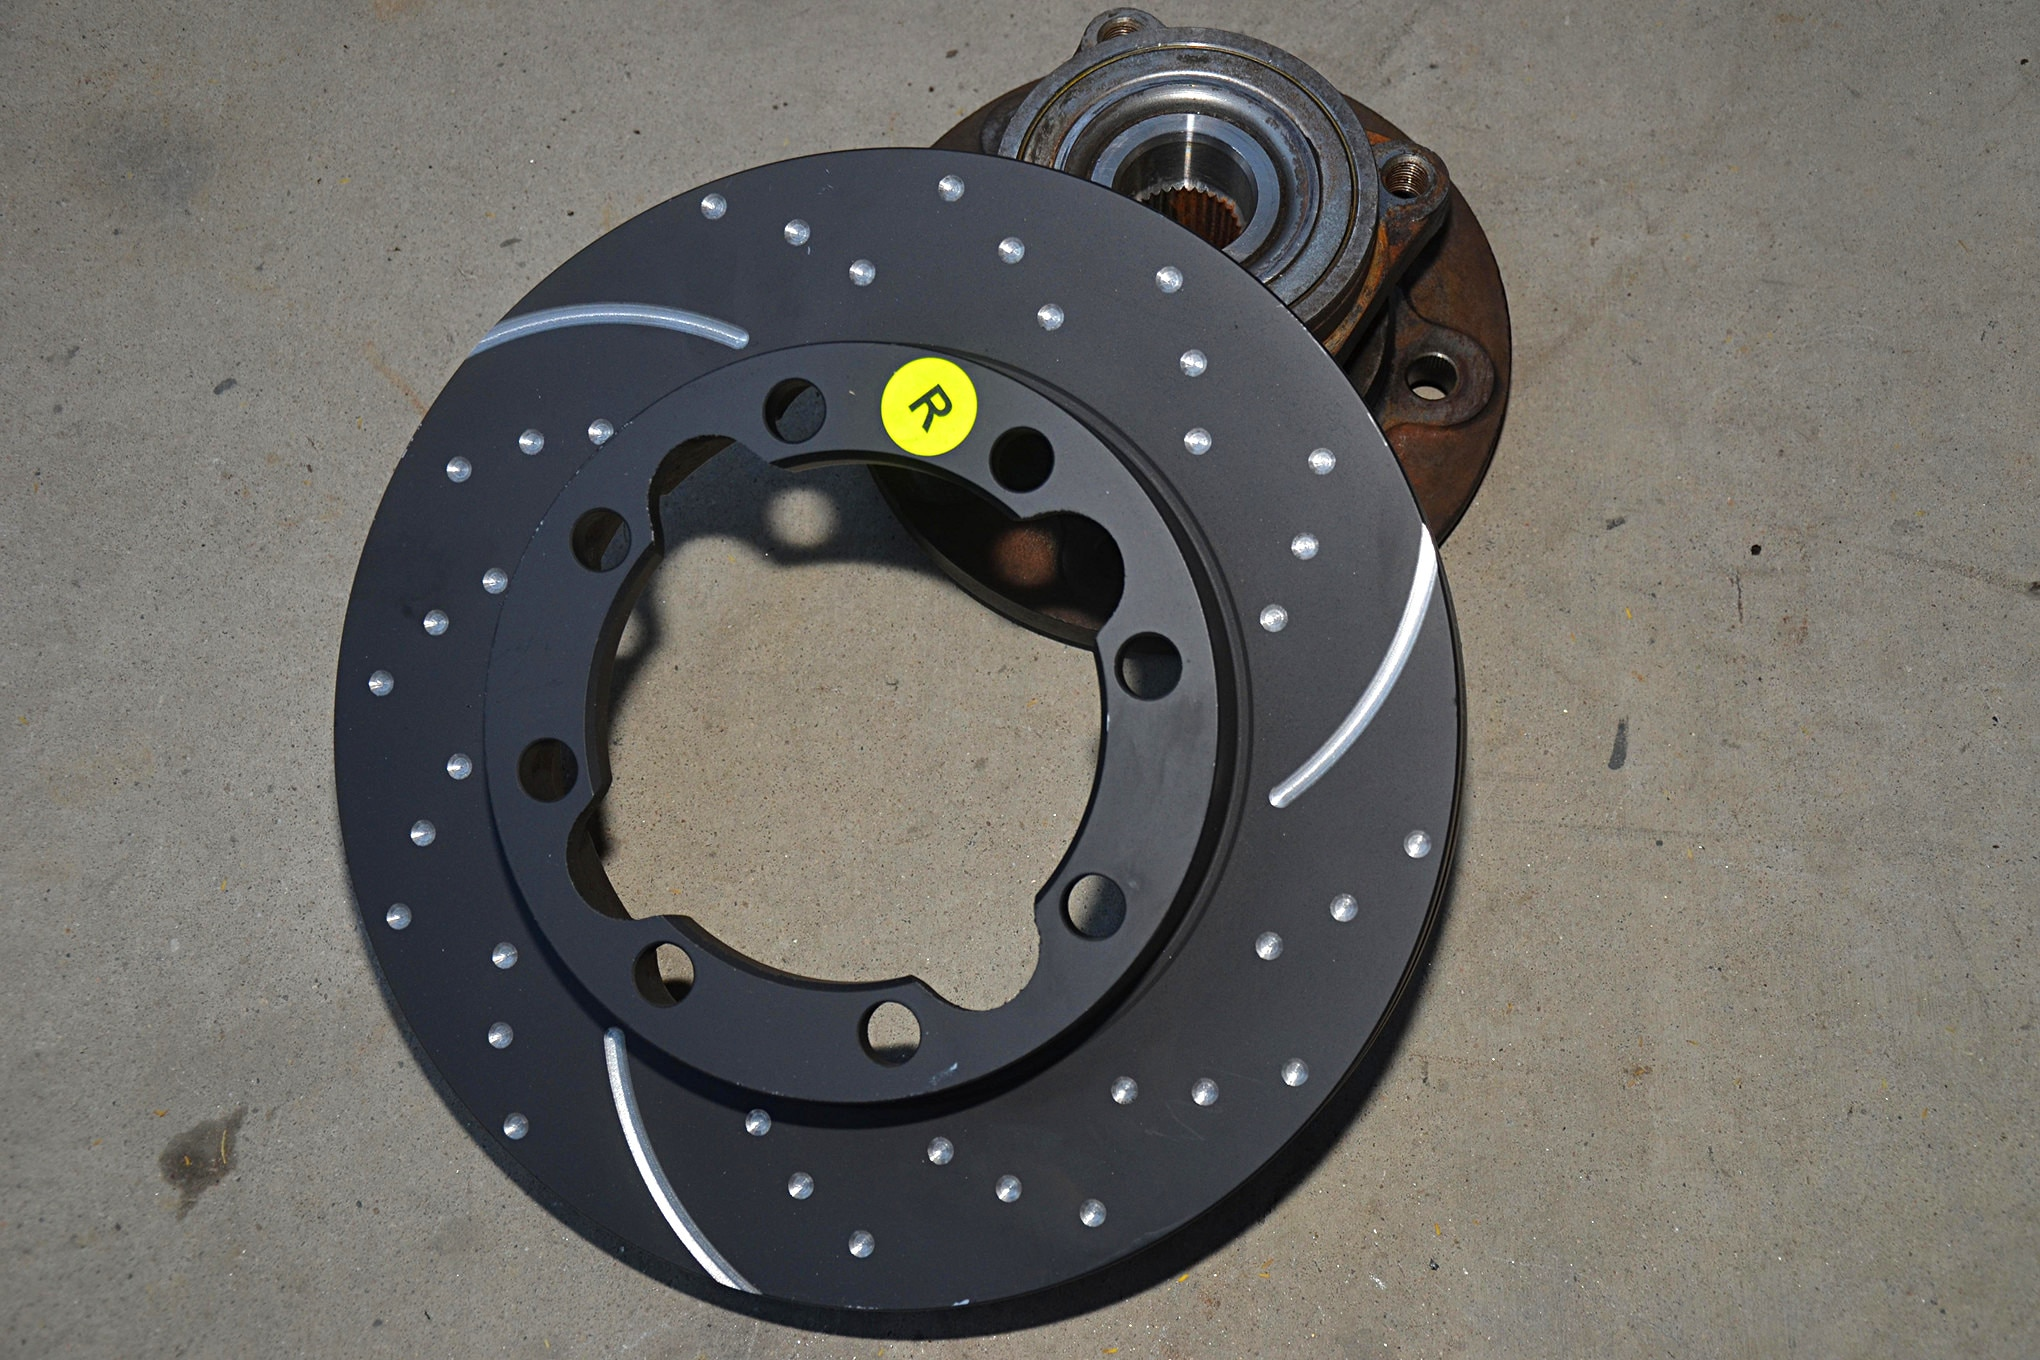 These EBC rotors are made out of high carbon and silicon steel for outstanding braking performance. Each rotor is drilled and machined to help the rotor shed heat. The directional slots machined in the rotor mean there is a right and left rotor. The black coating keeps the rotors from corroding before installation.